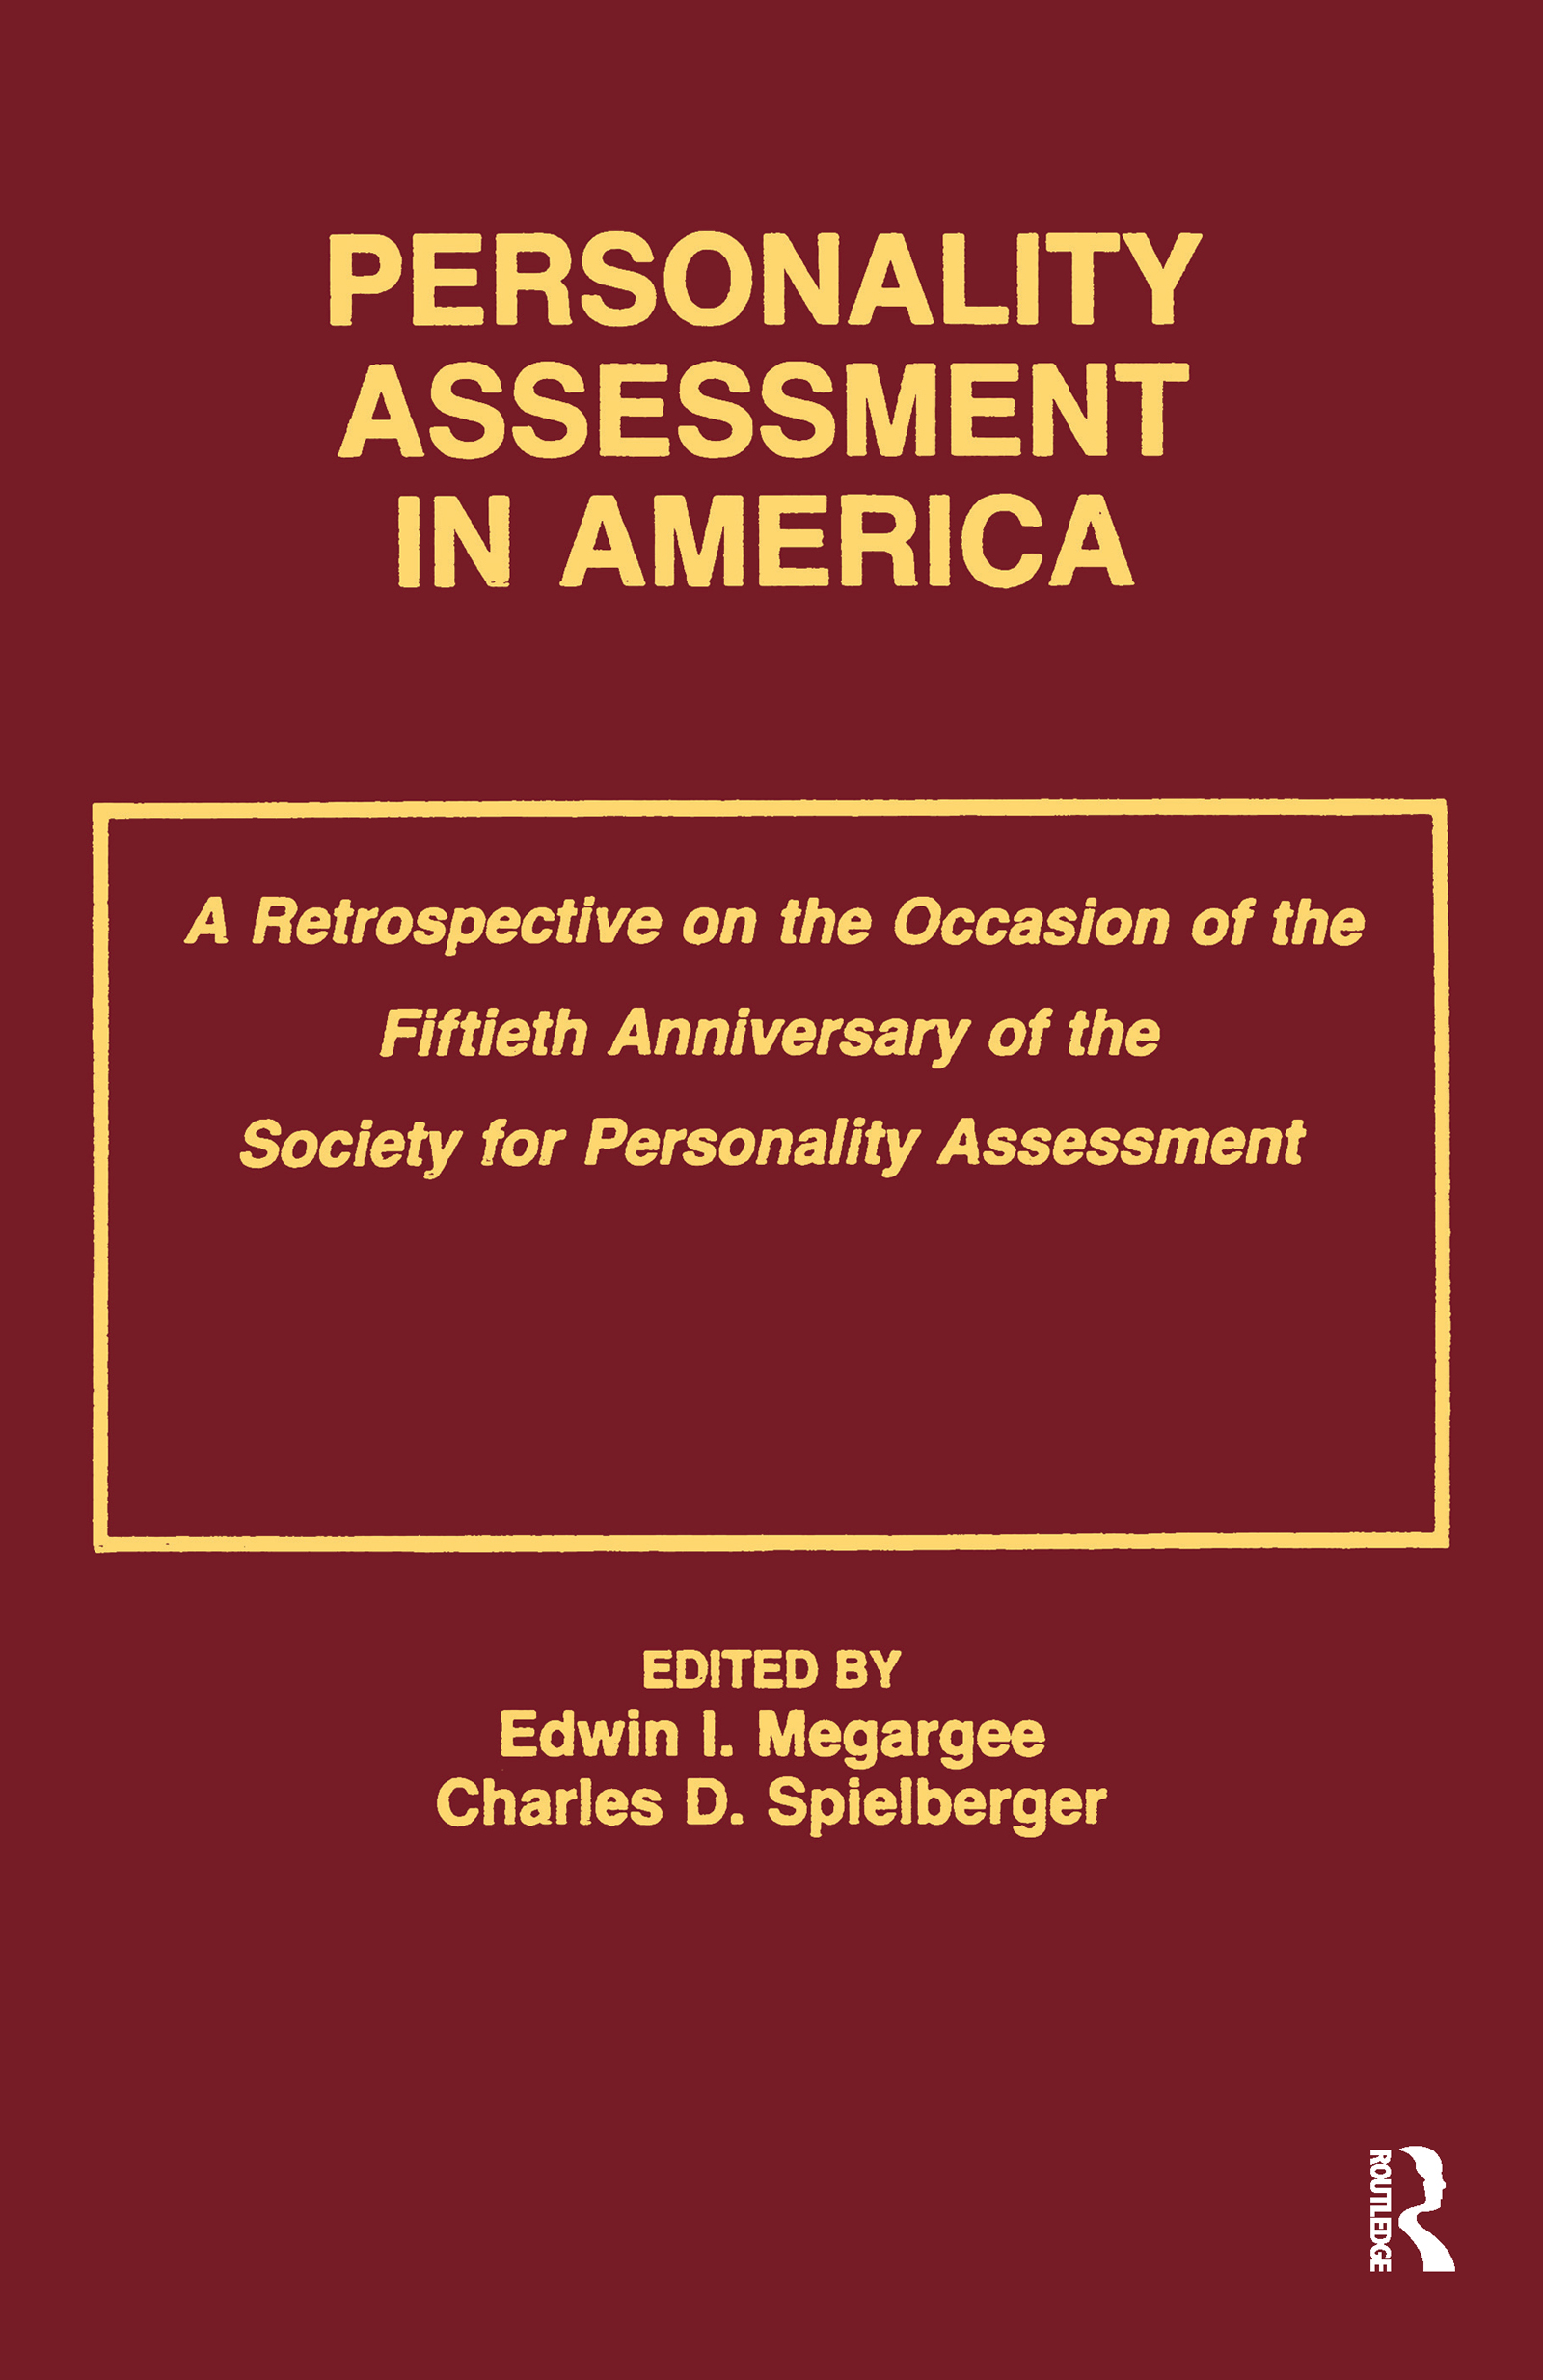 Personality Assessment in America: A Retrospective on the Occasion of the Fiftieth Anniversary of the Society for Personality Assessment book cover